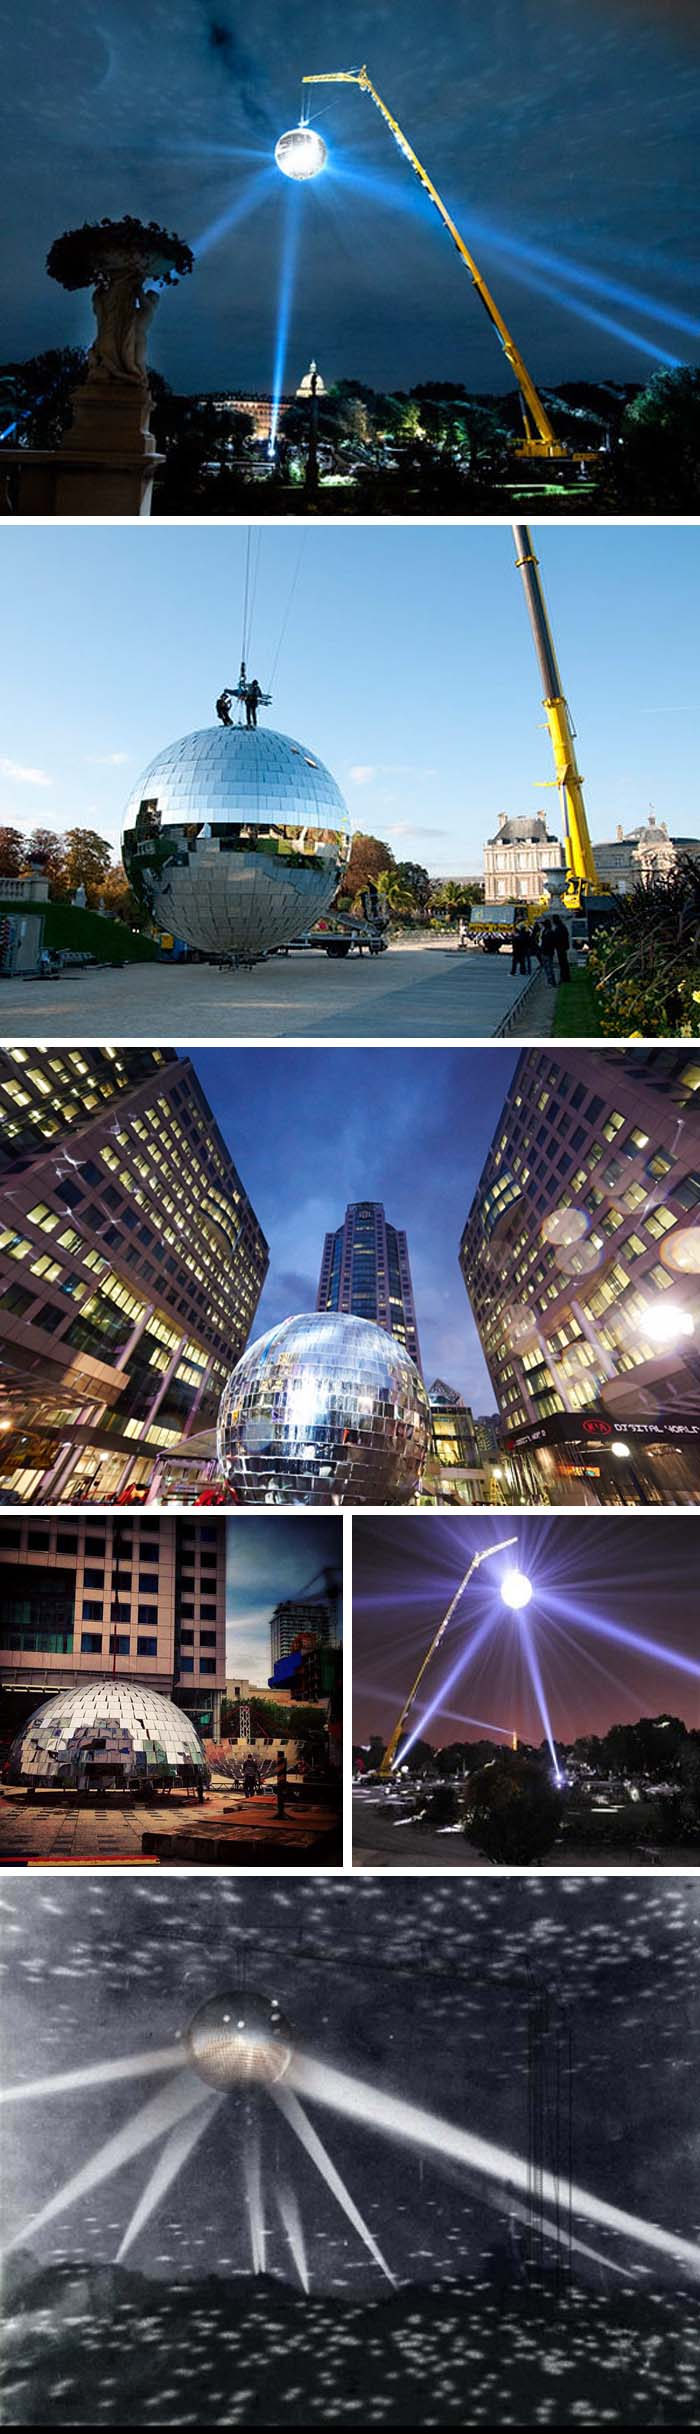 World's Largest Disco Ball, One Thousand Speculations by Michel de Broin for Luminato Festival, Toronto